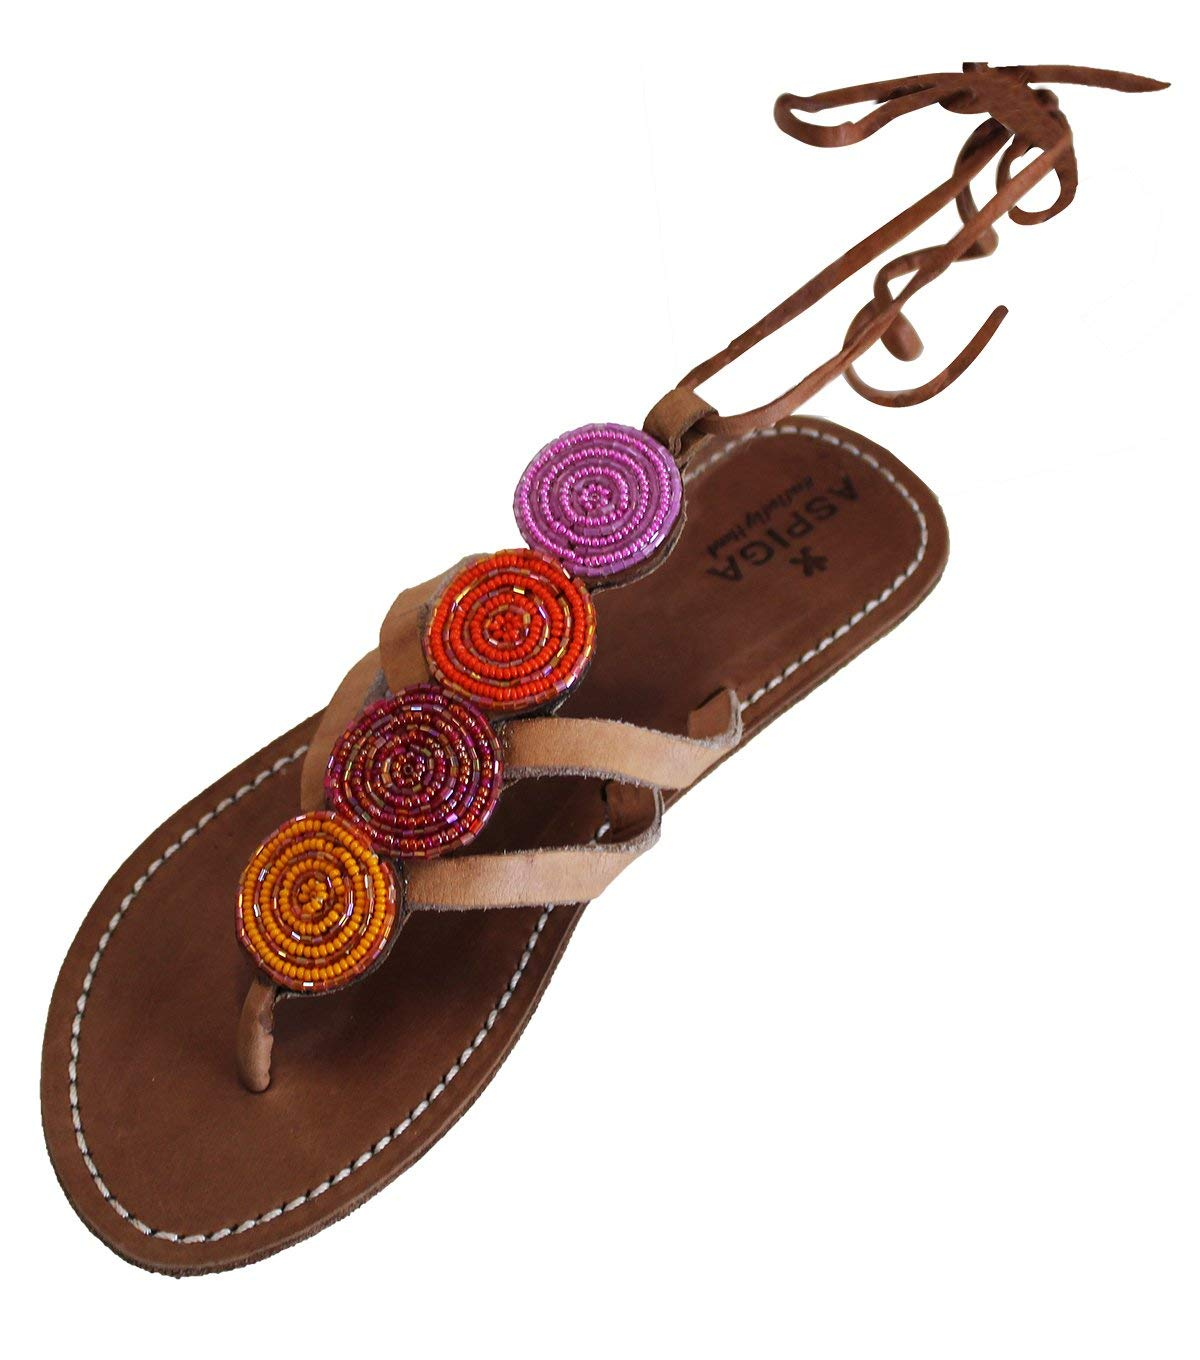 0e565758749 Get Quotations · New Women Beaded Gladiator Sandals Shoes Thong Flops T  Strap Flip Flat Size Open Toe